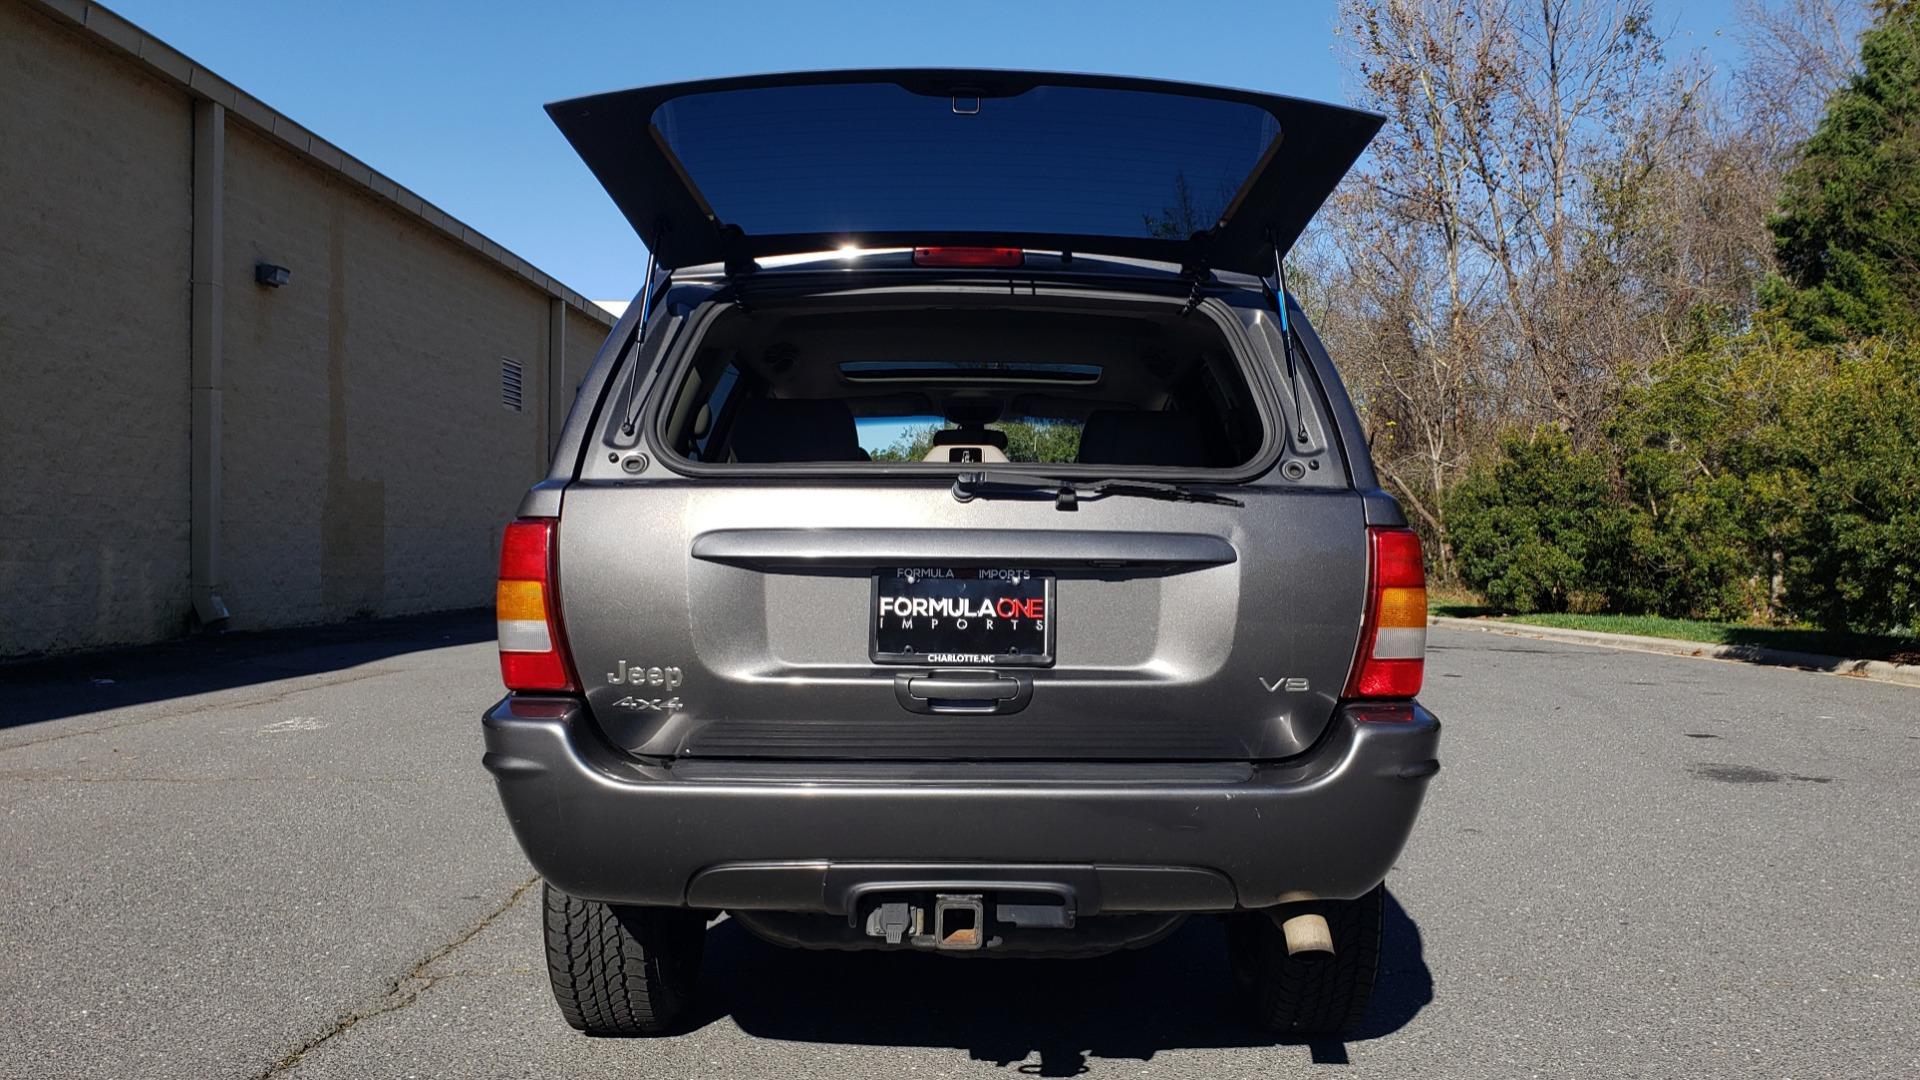 Used 2002 Jeep GRAND CHEROKEE LIMITED 4X4 / SUNROOF / 4.7L V8 / 5-SPD AUTO / CLD WTHR for sale Sold at Formula Imports in Charlotte NC 28227 37